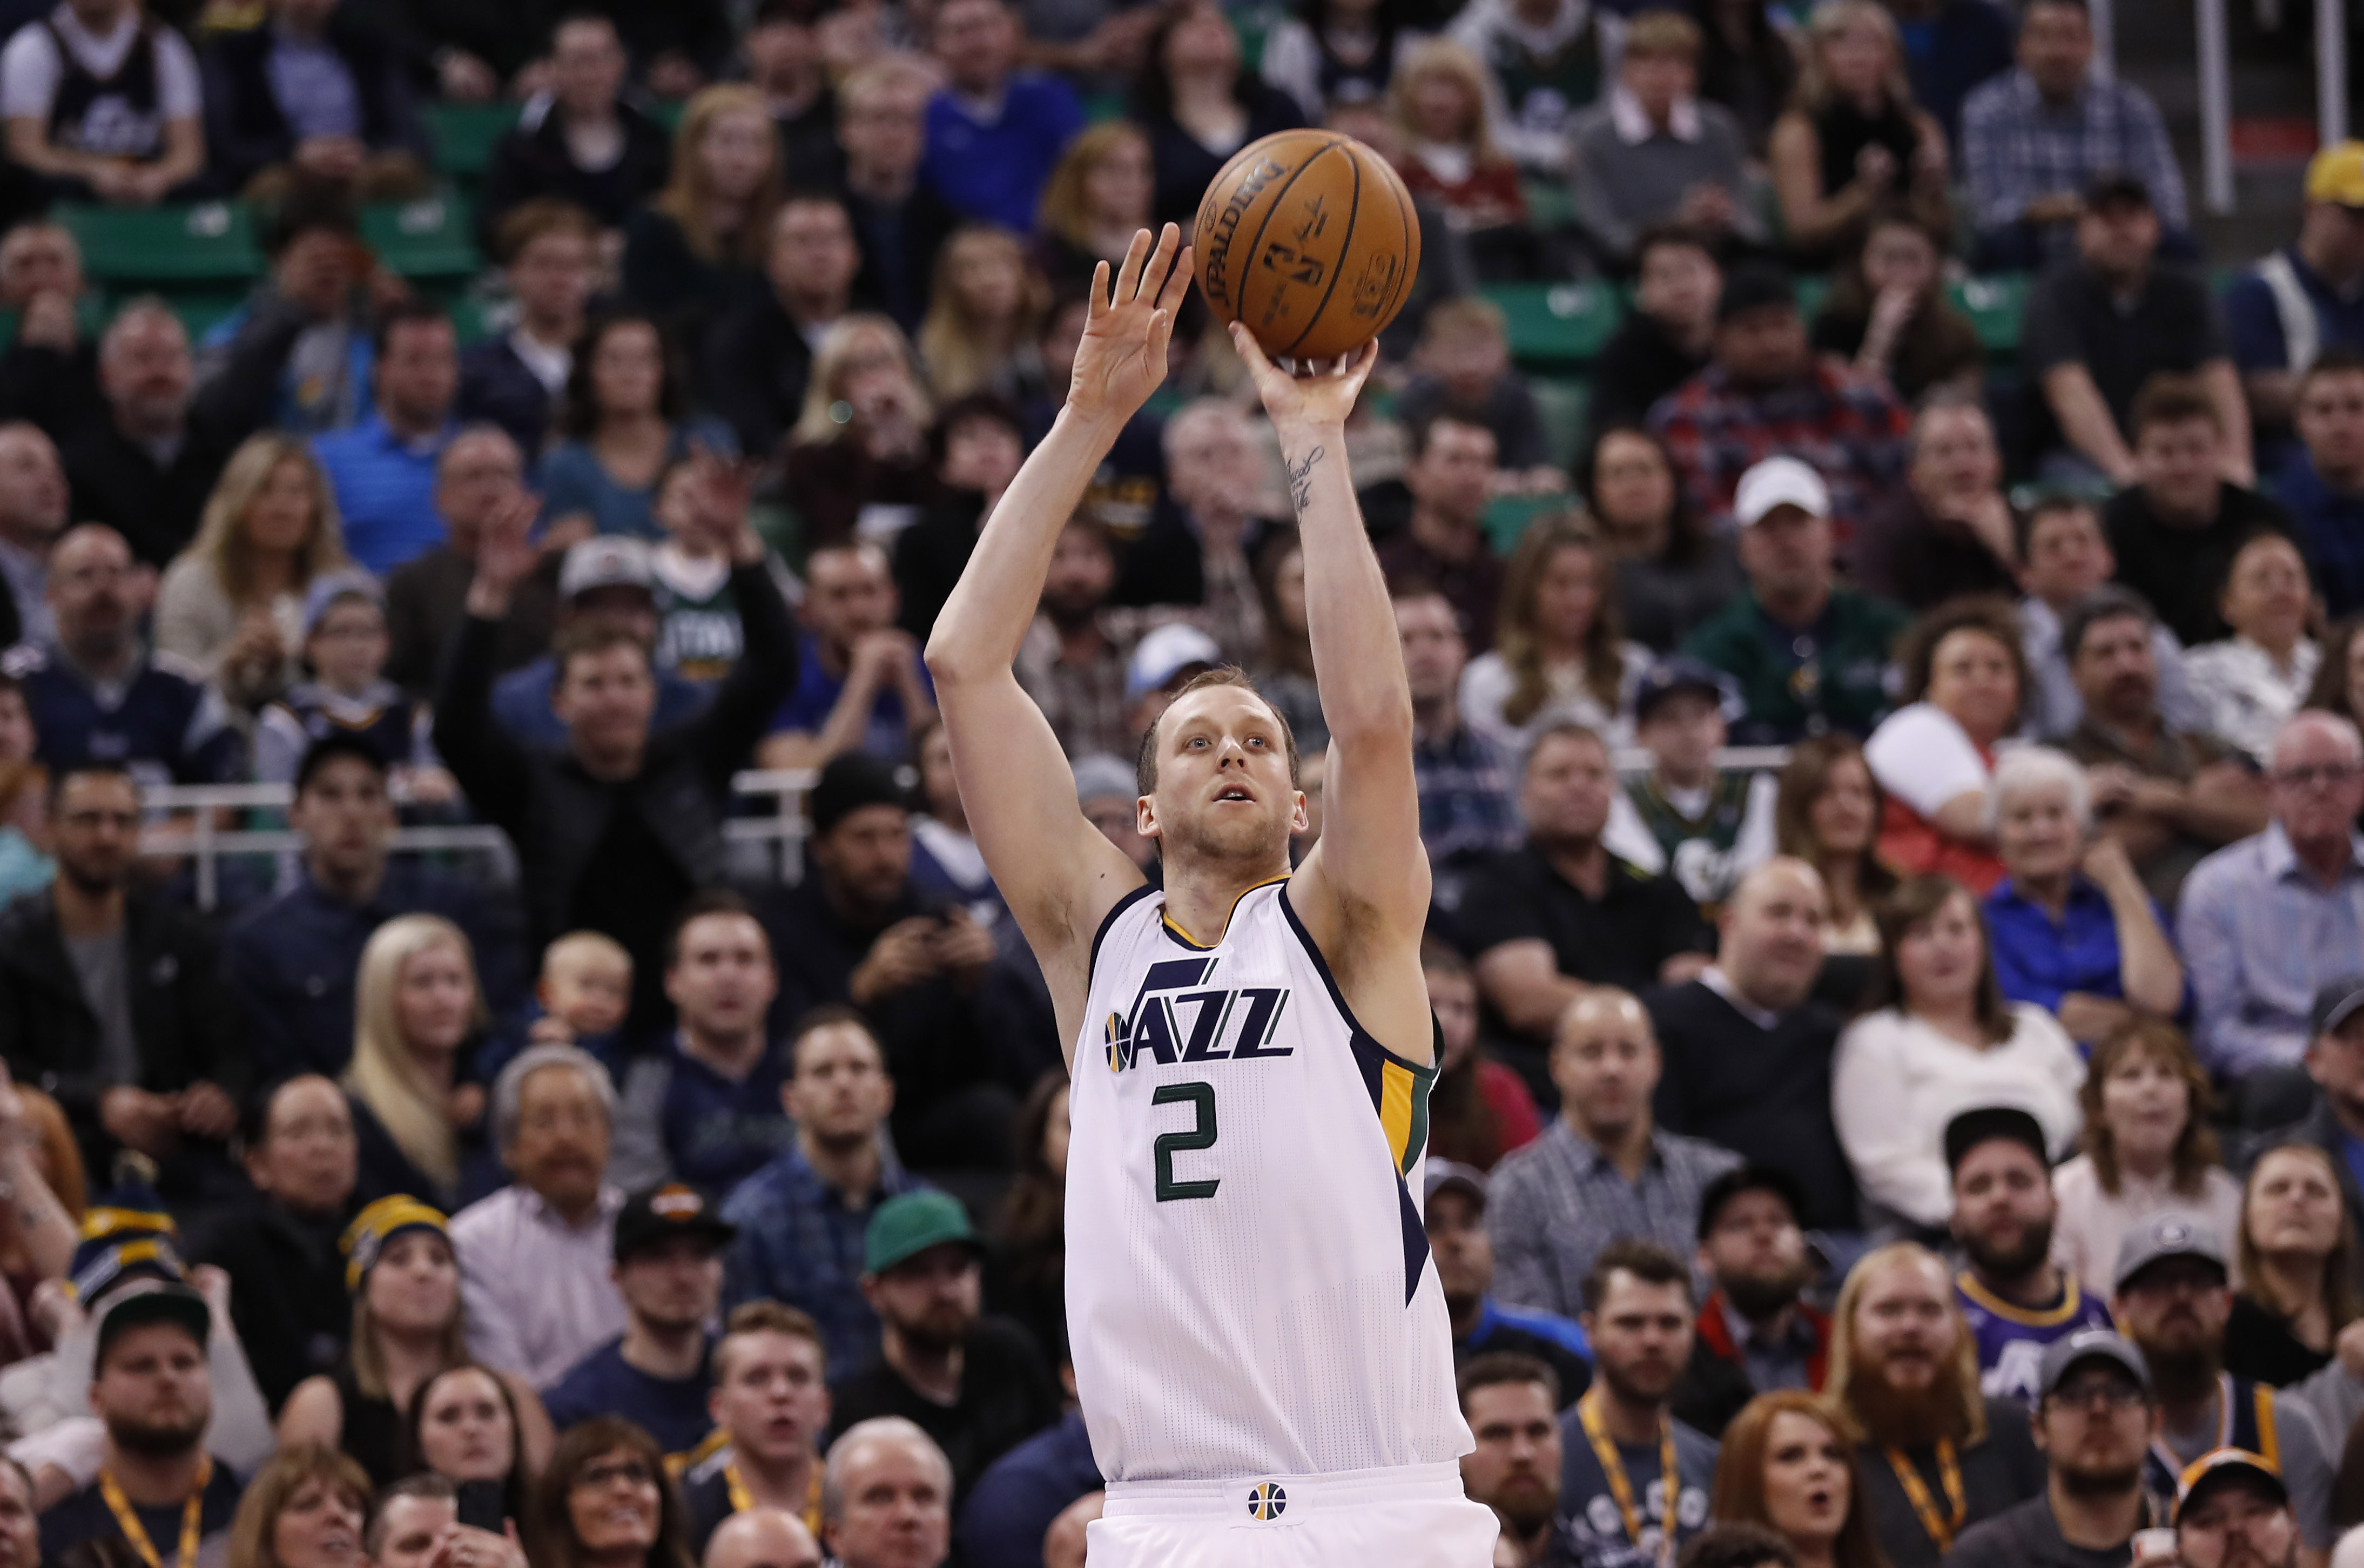 Jan 14, 2017; Salt Lake City, UT, USA; Utah Jazz forward Joe Ingles (2) shoots a three-pointer against the Orlando Magic in the fourth quarter at Vivint Smart Home Arena. The Utah Jazz defeated the Orlando Magic 114-107. Mandatory Credit: Jeff Swinger-USA TODAY Sports